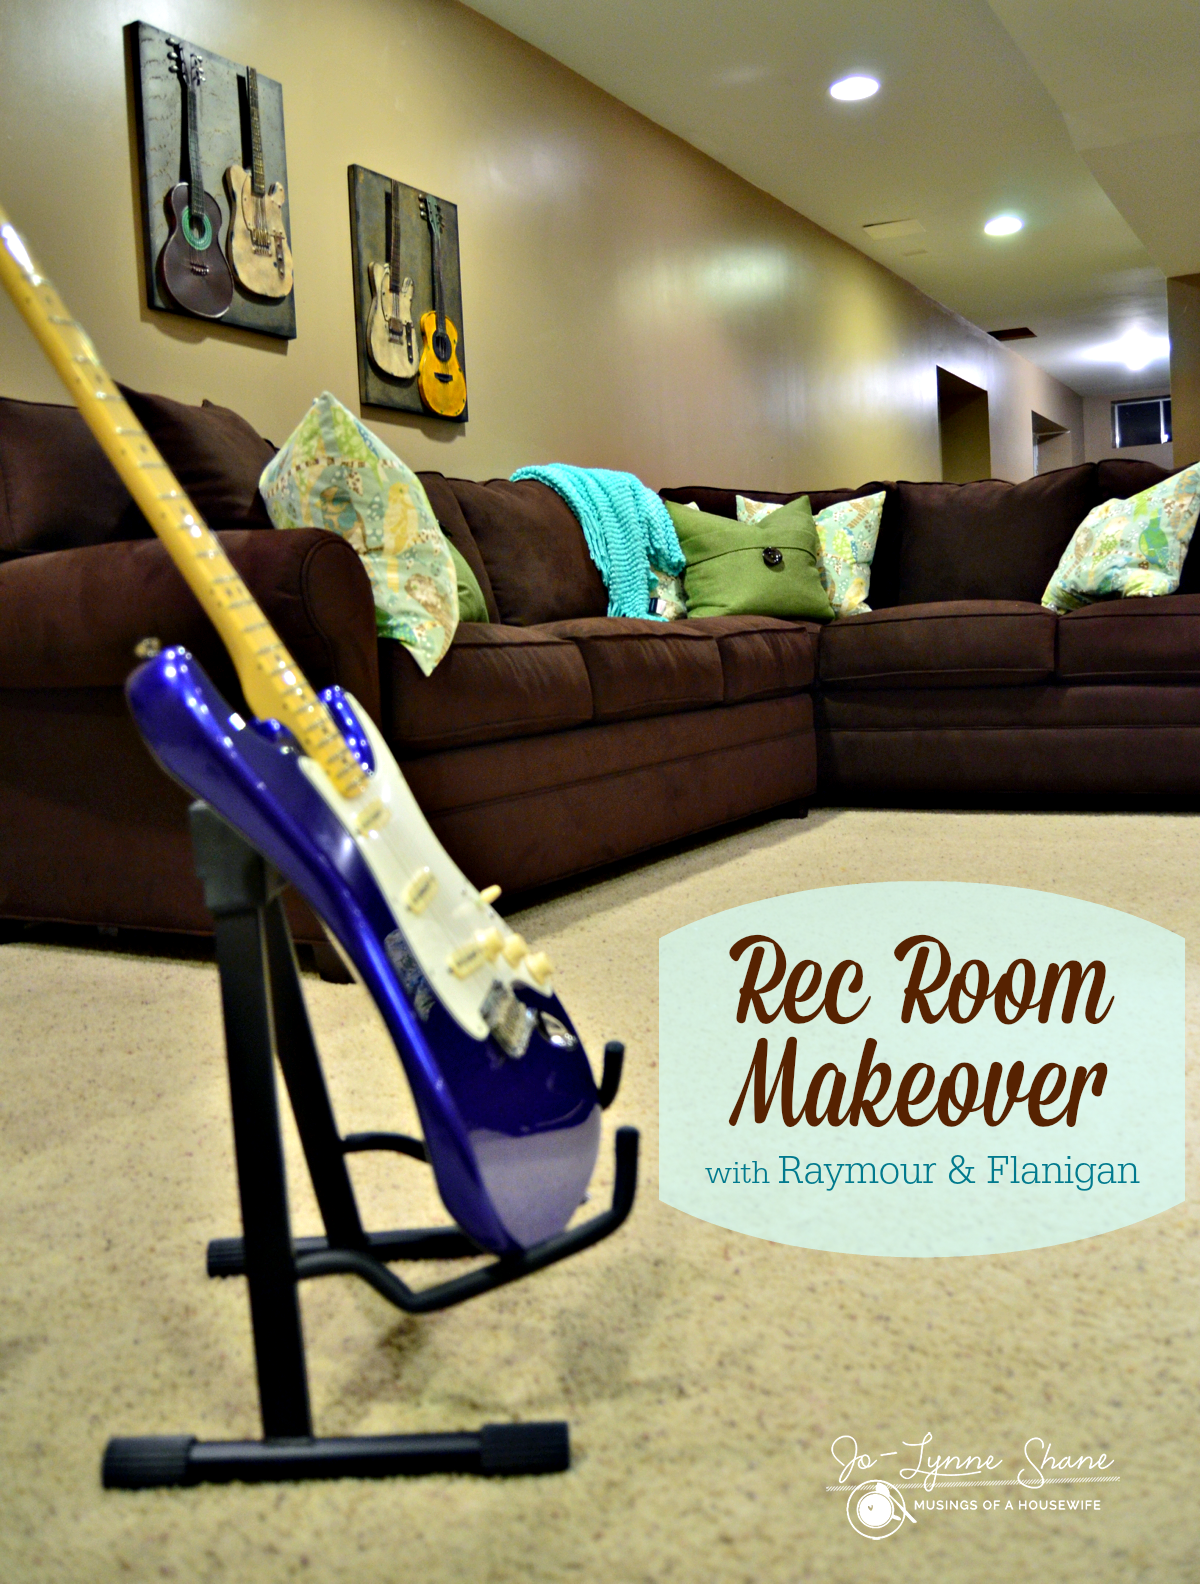 Rec Room Makeover with Raymour & Flanigan